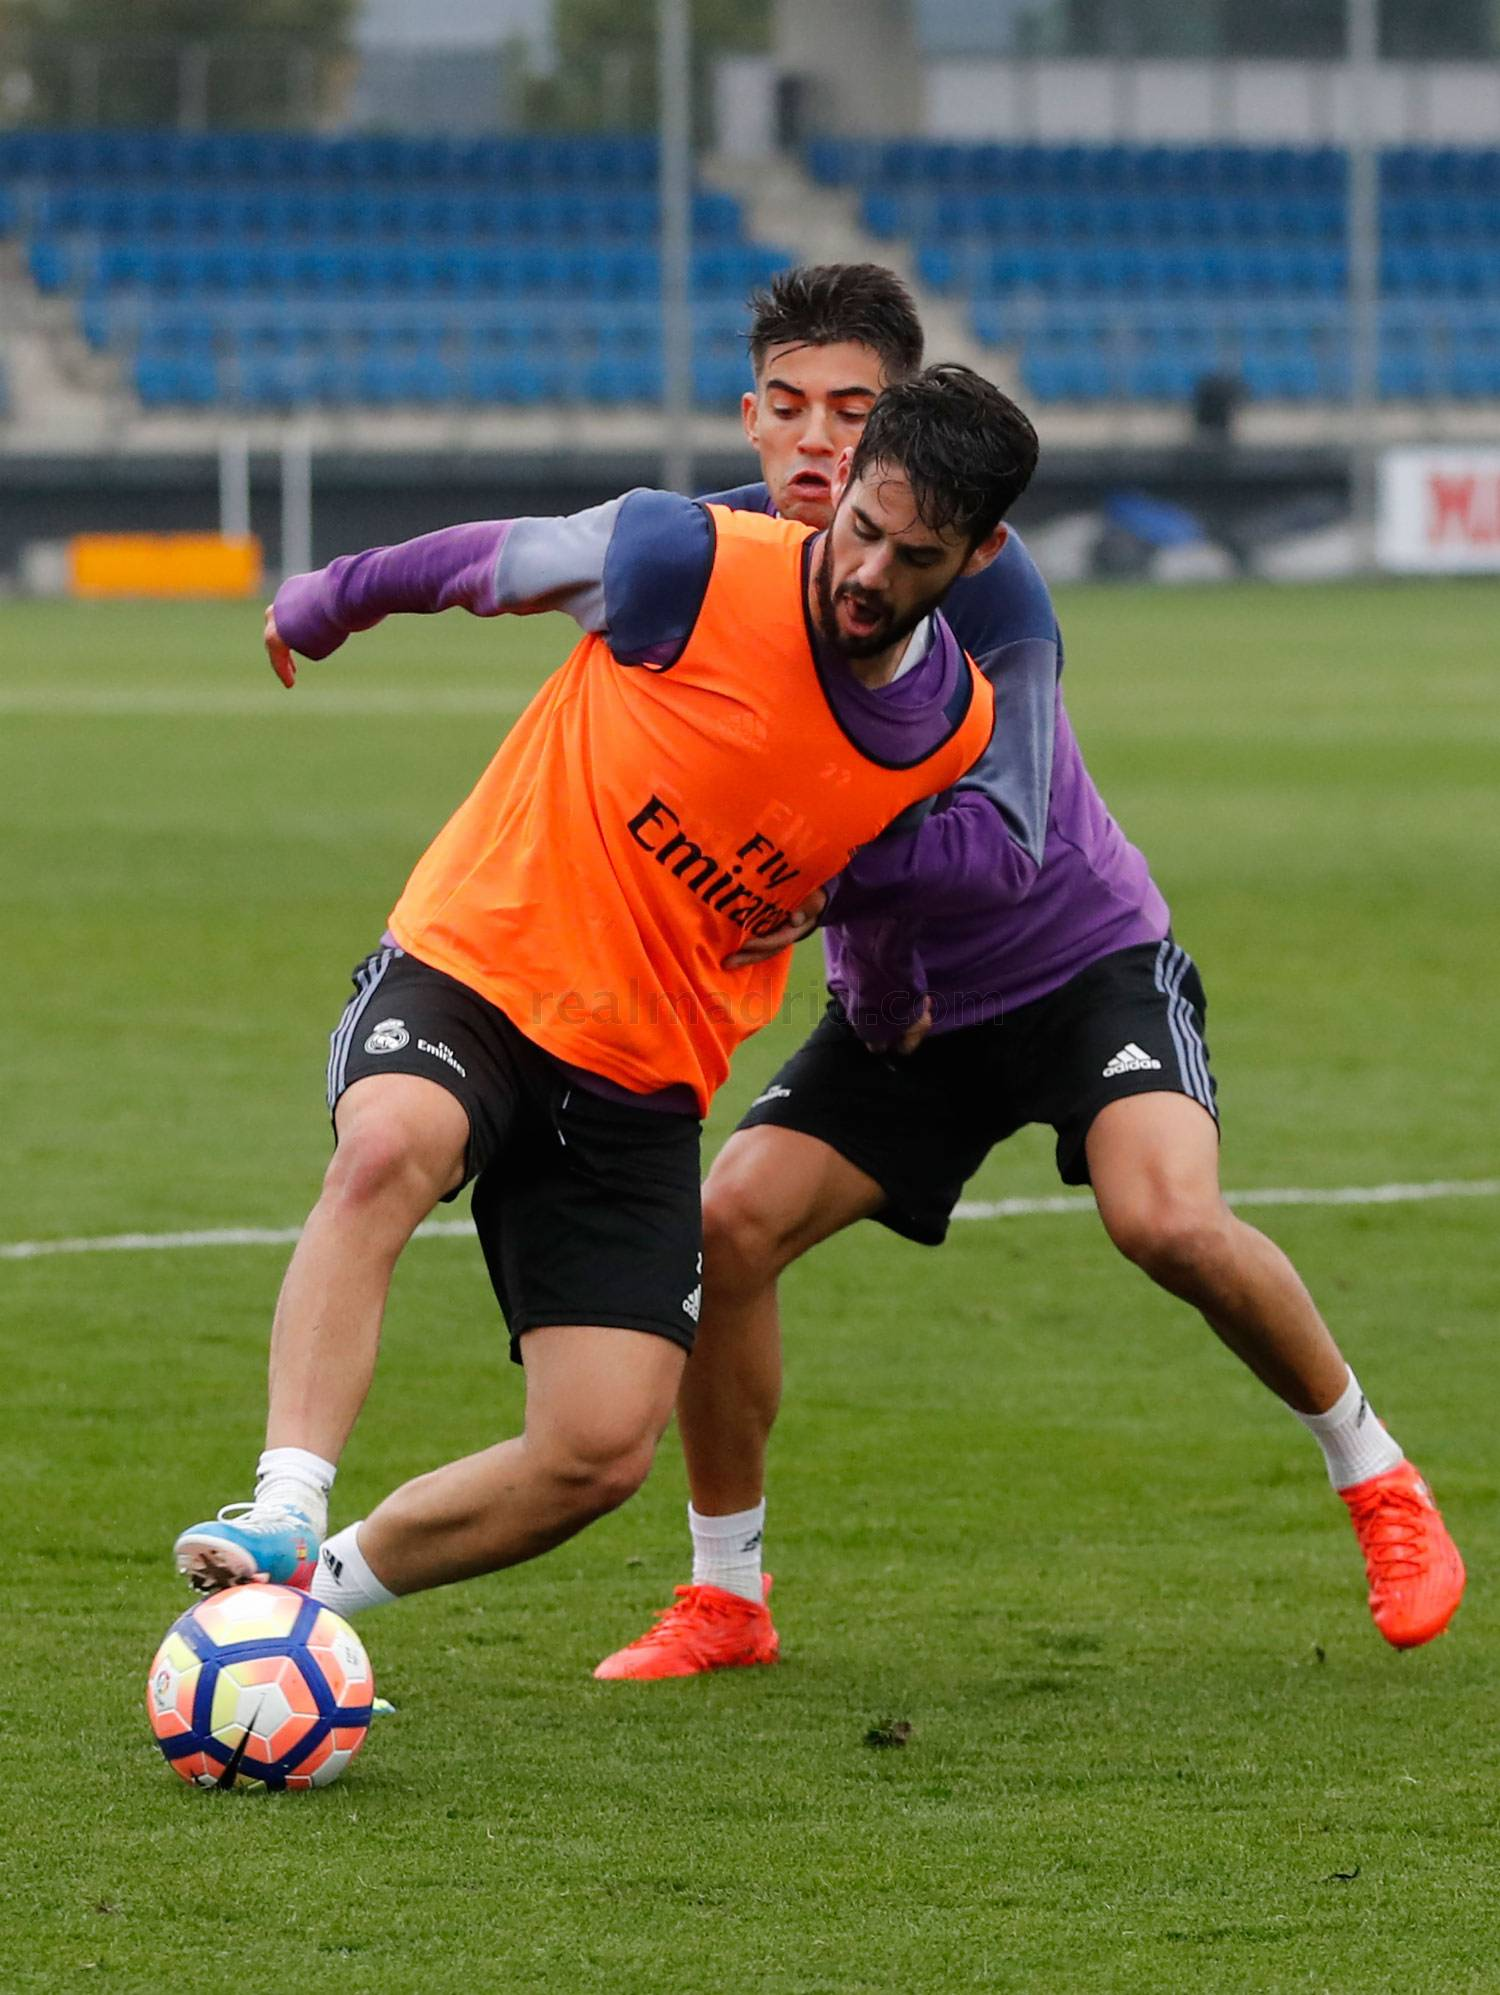 Real Madrid - Entrenamiento del Real Madrid - 12-10-2016